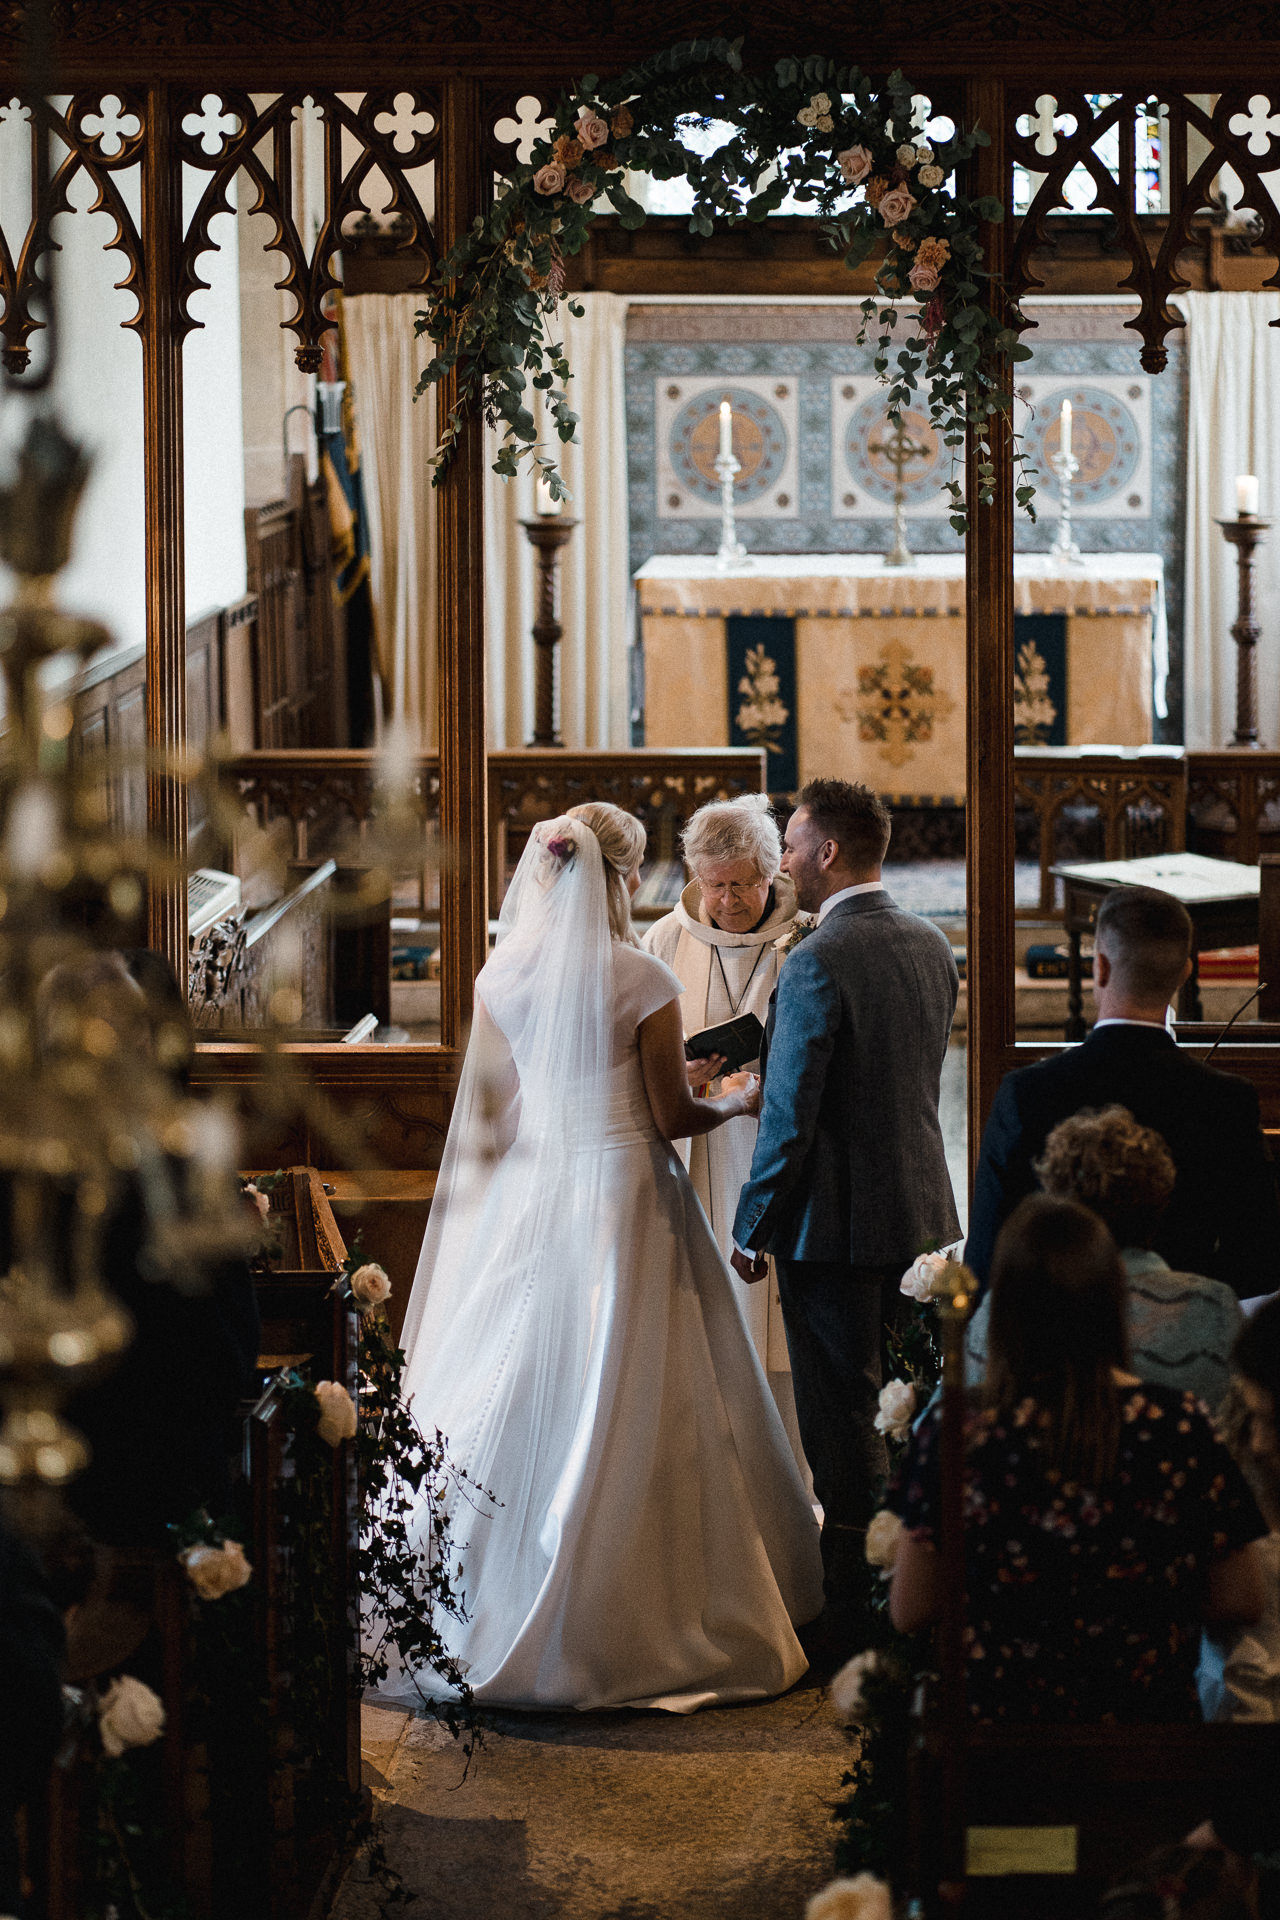 0122-DEVON-SOMERSET-WEDDING-PHOTOGRAPHER-0636-BEST-OF-2019-LOUISE-MAY-DEVON-SOMERSET-WEDDING-PHOTOGRAPHY-20191019-13-22-54-LM204359